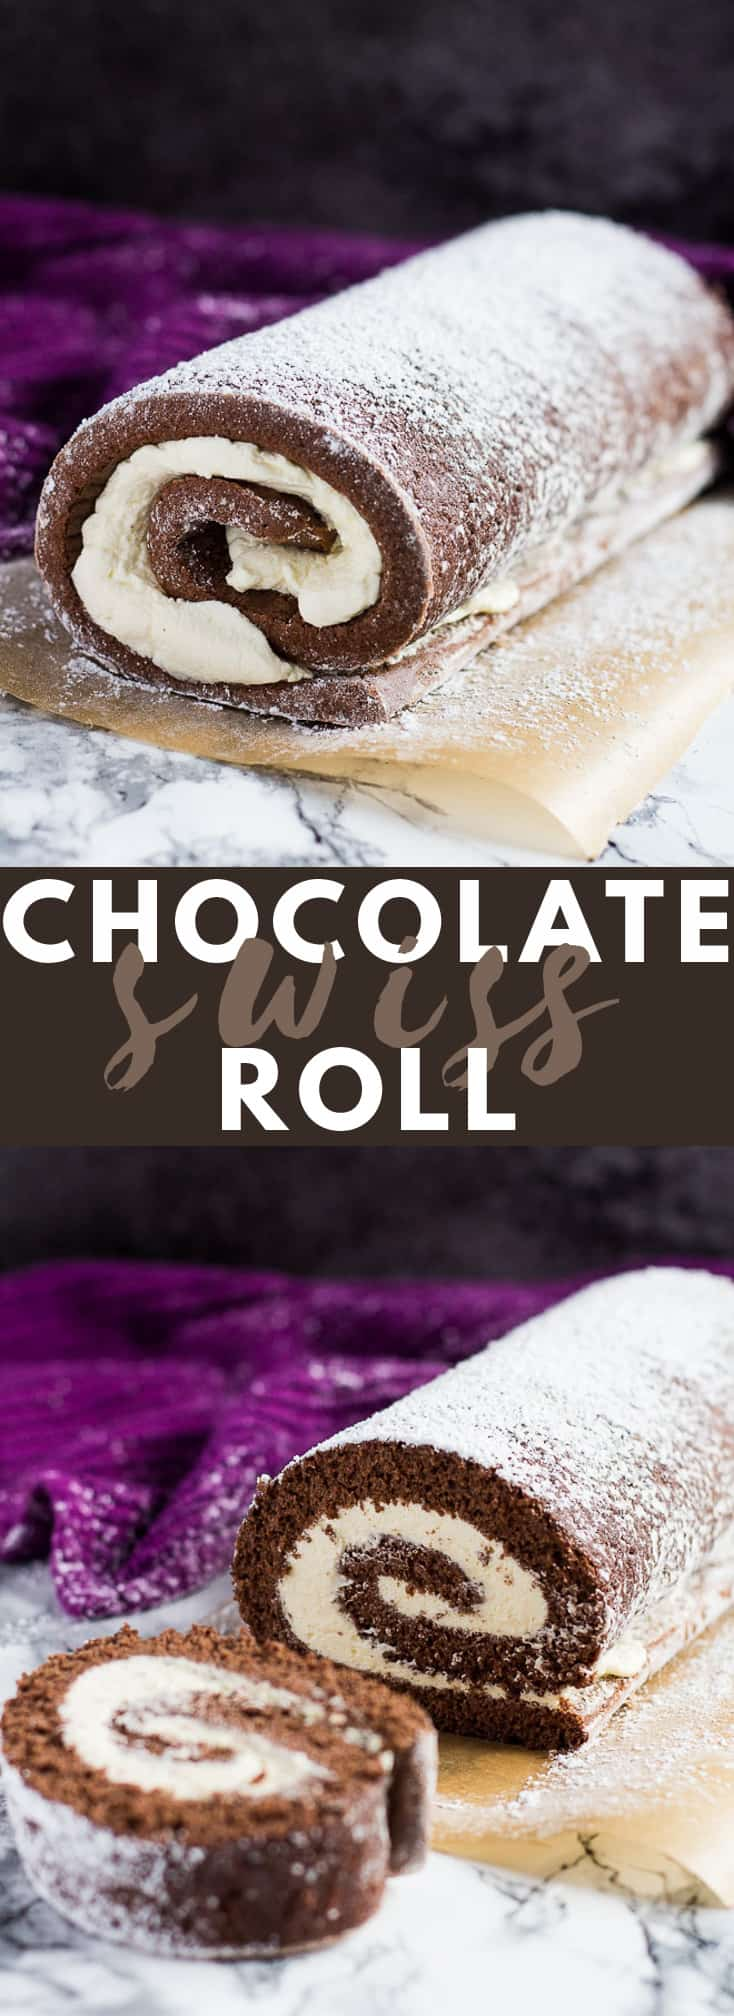 Chocolate Swiss Roll - Deliciously moist and fluffy cake filled with a thick layer of vanilla whipped cream and dusted with icing sugar! #chocolateswissroll #swissrollrecipes #chocolaterecipes #cakerecipes